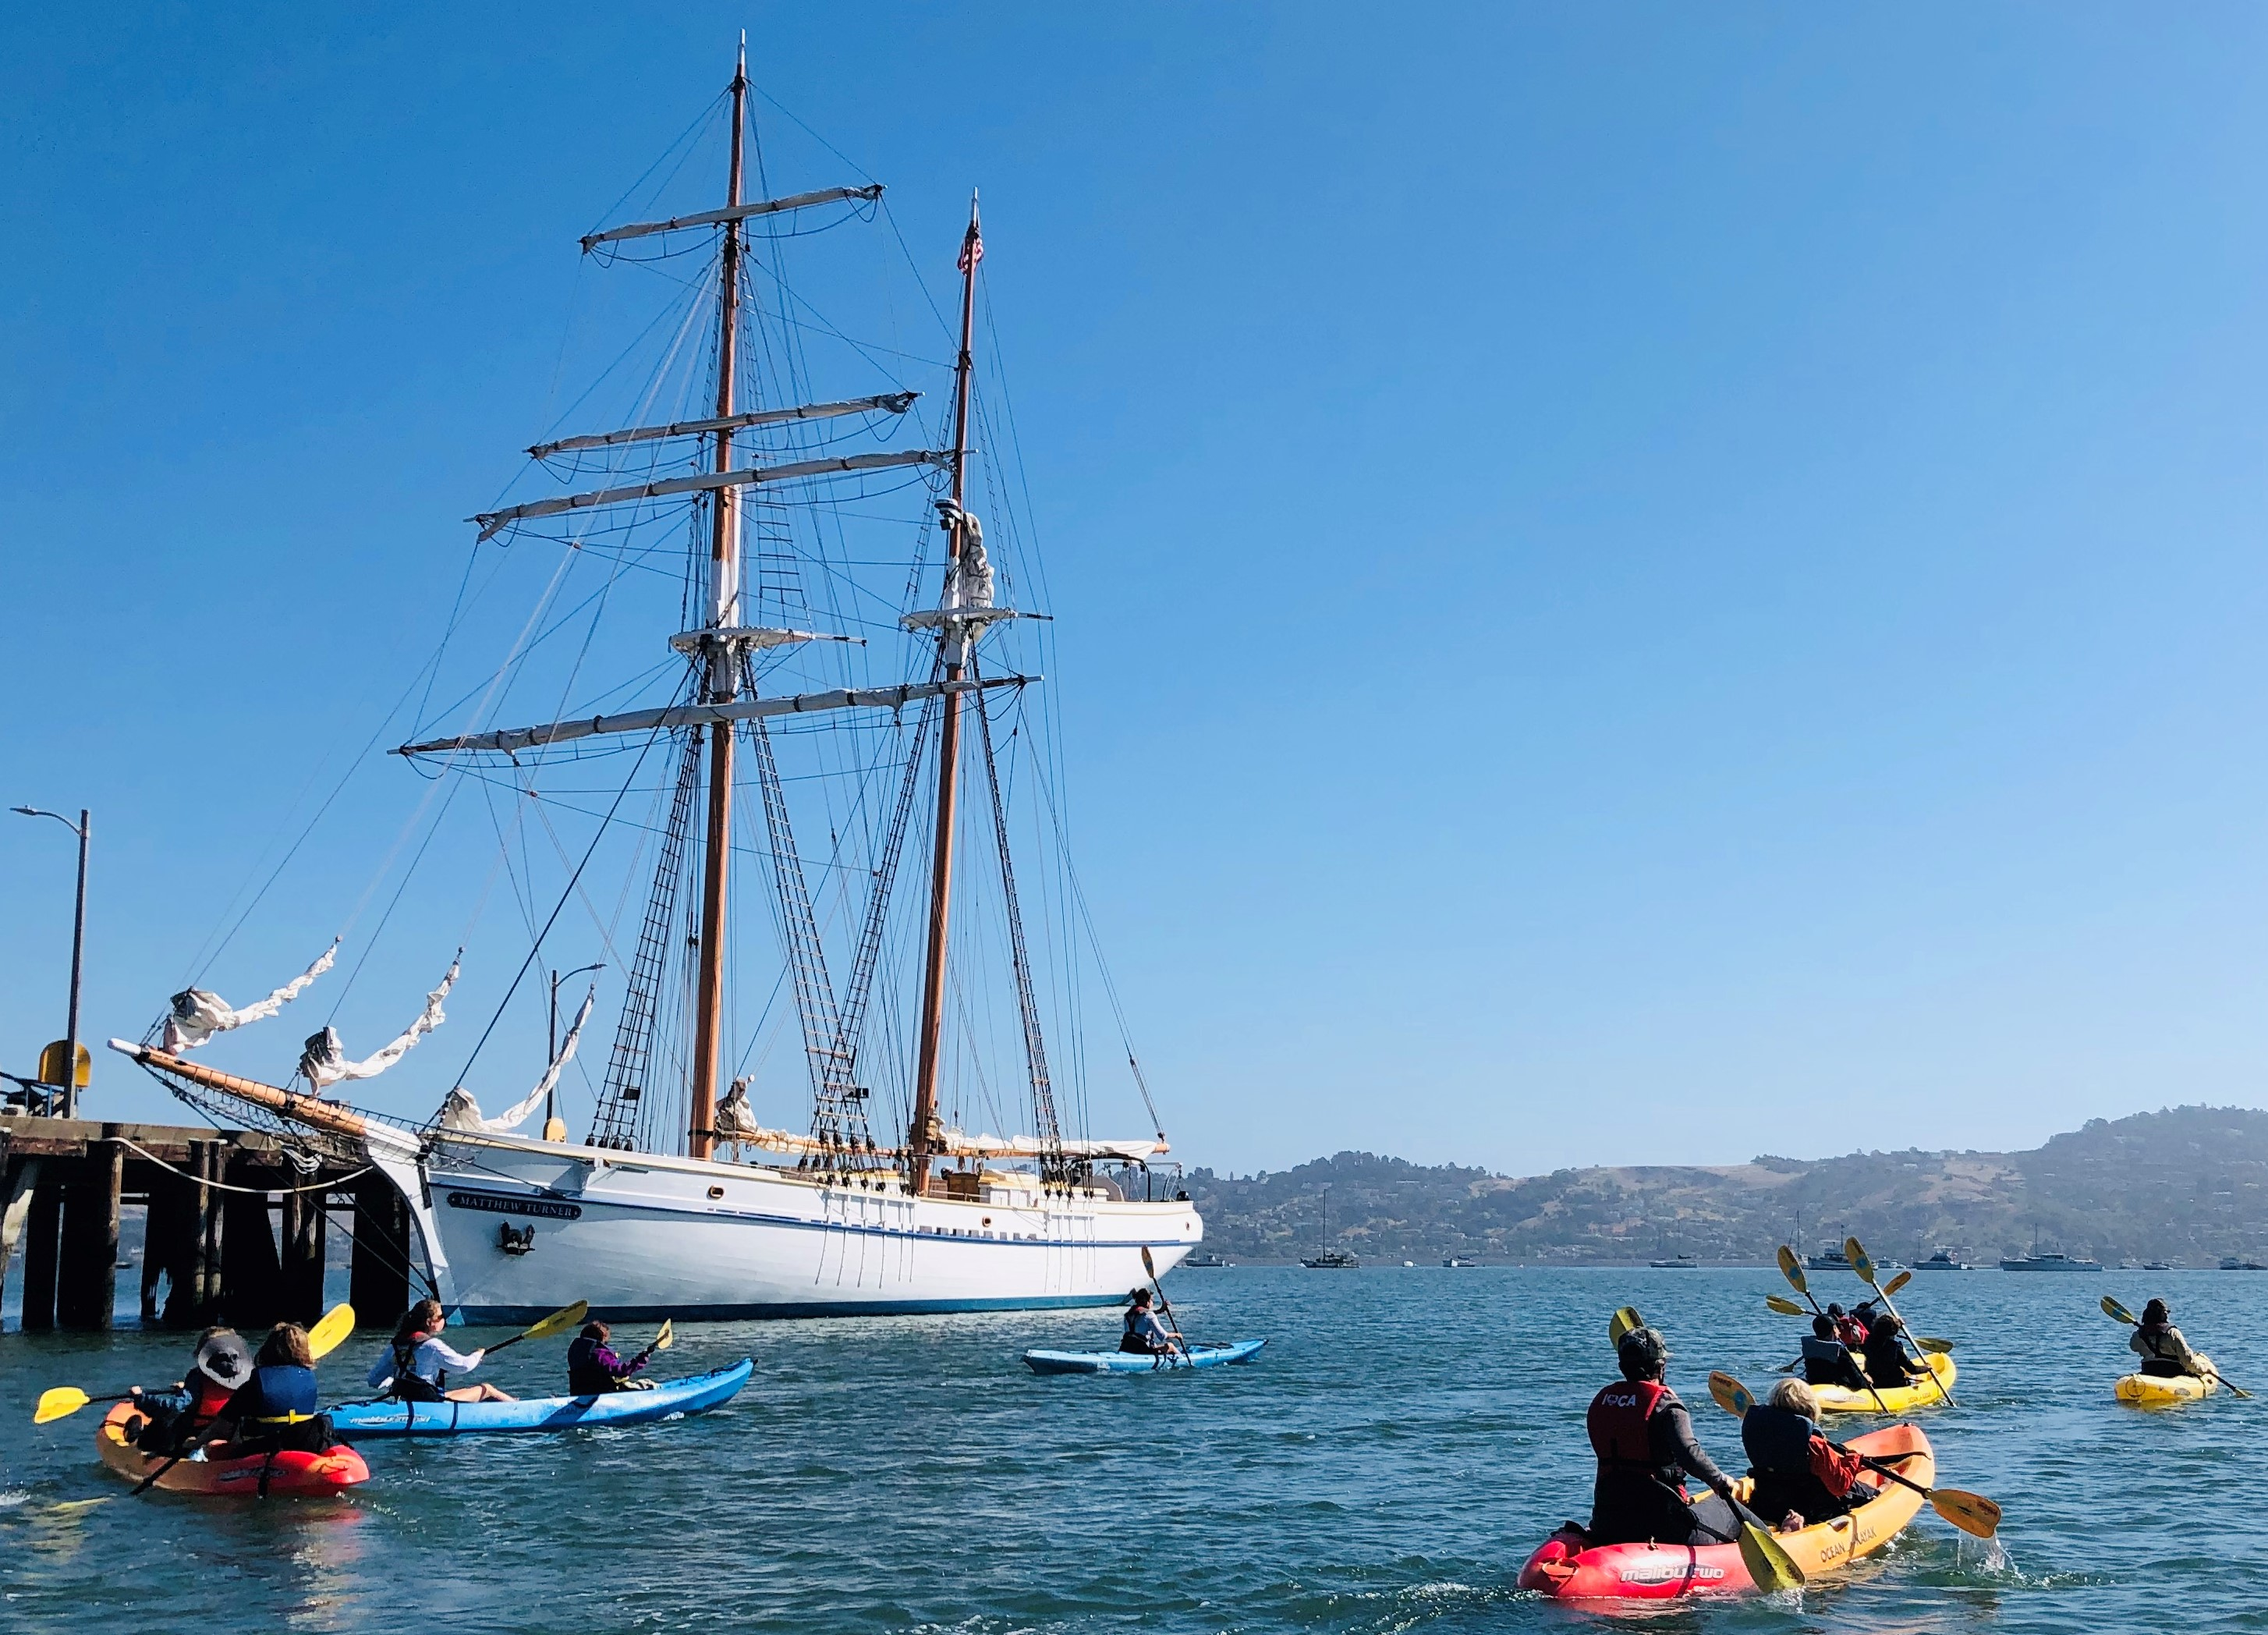 Call of the Sea Summer Camps Under Way; Educational Tall Ship Matthew Turner Sets Sail